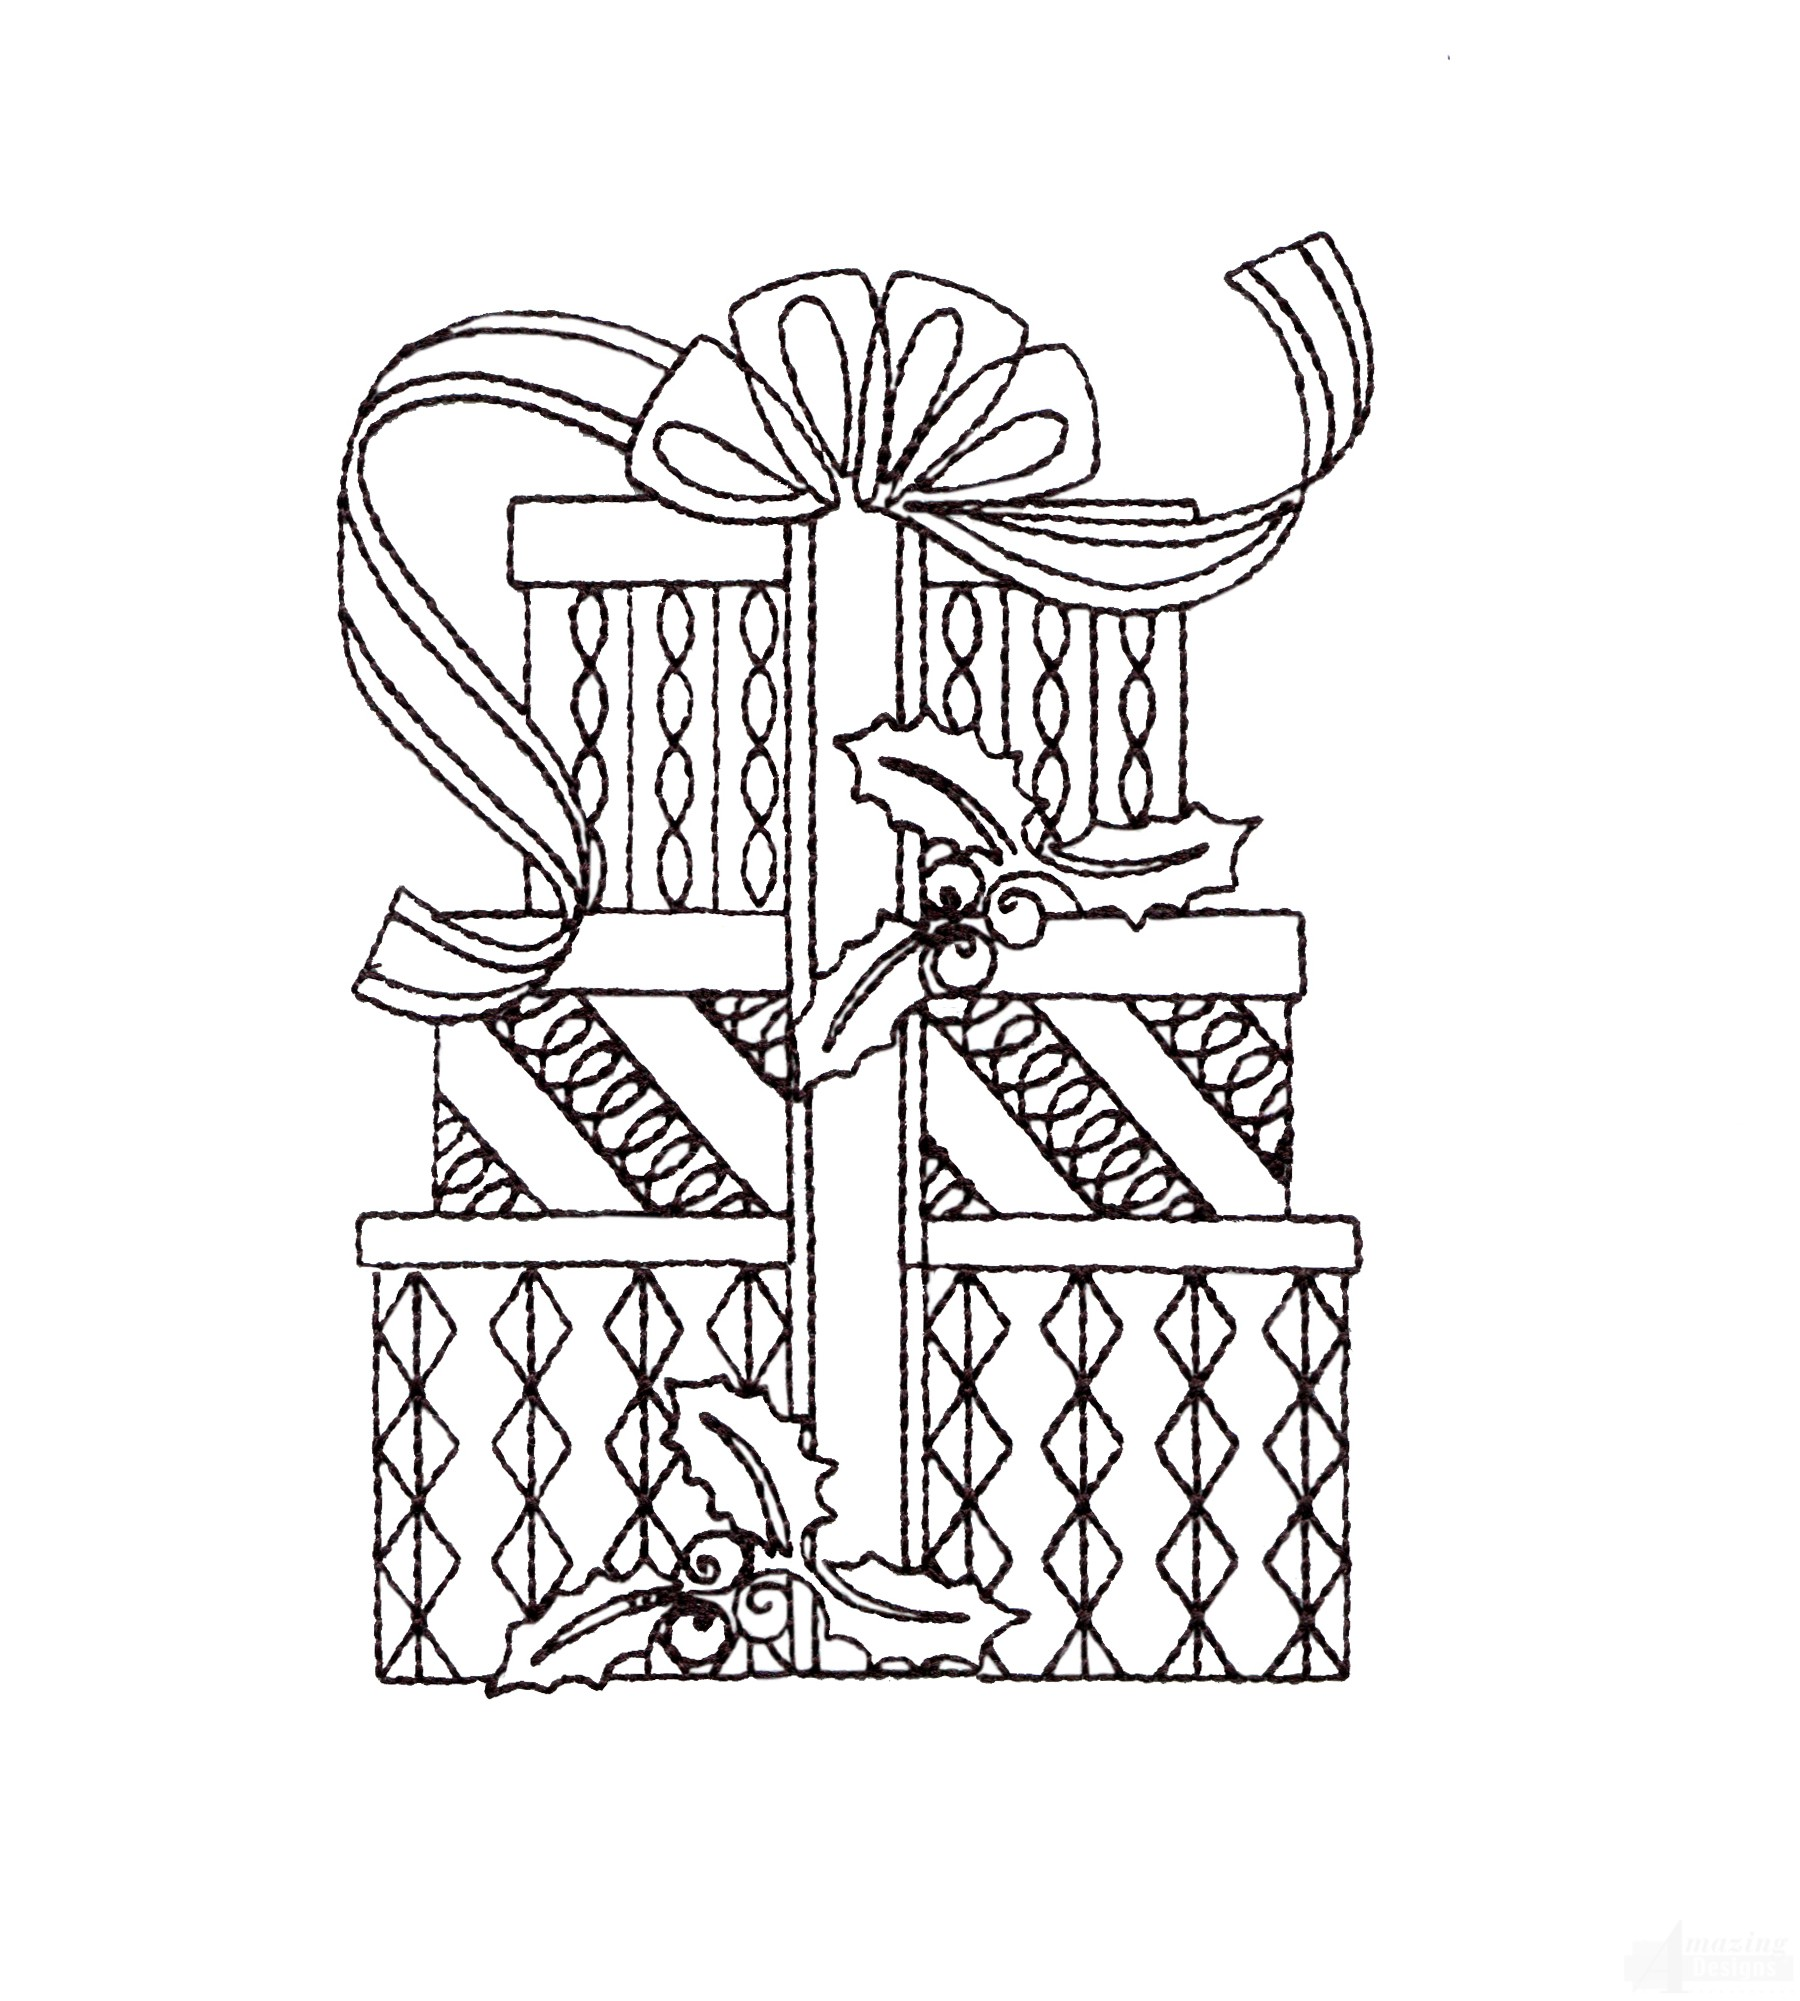 Swncqo311 Quilting Outline Embroidery Design